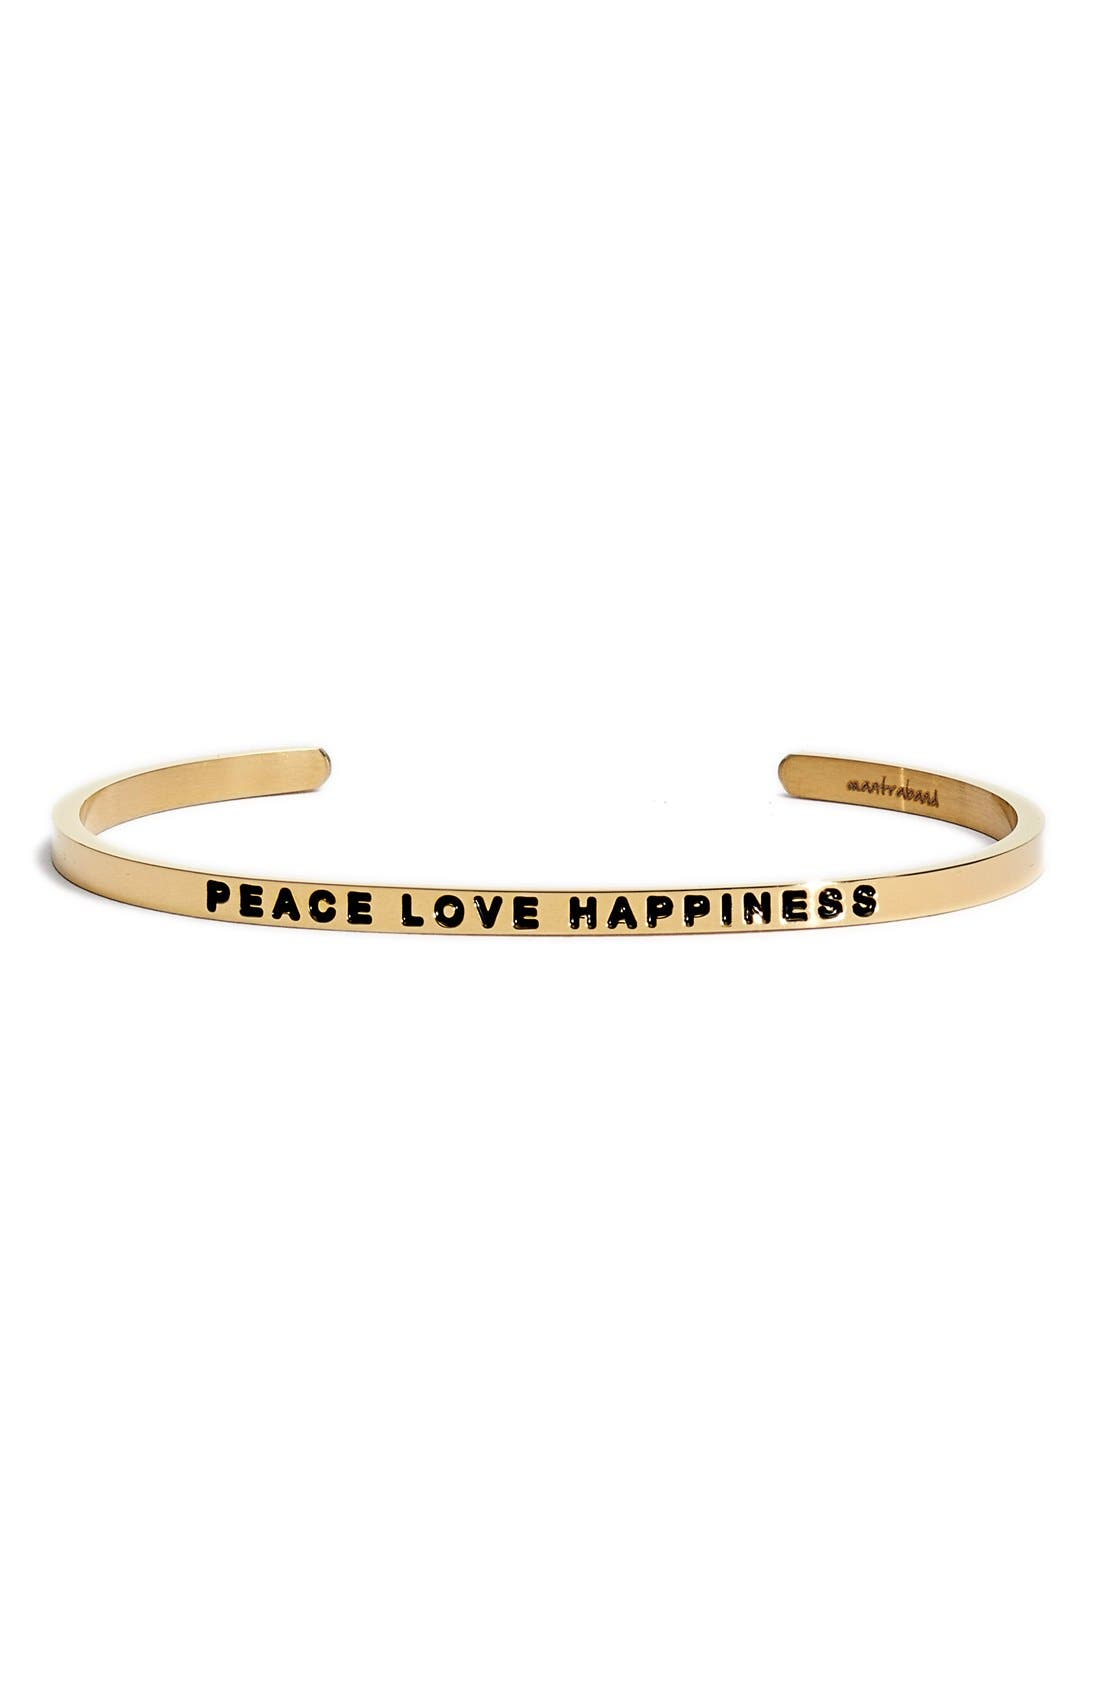 "MantraBand® ""Peace Love Happiness"" Cuff"